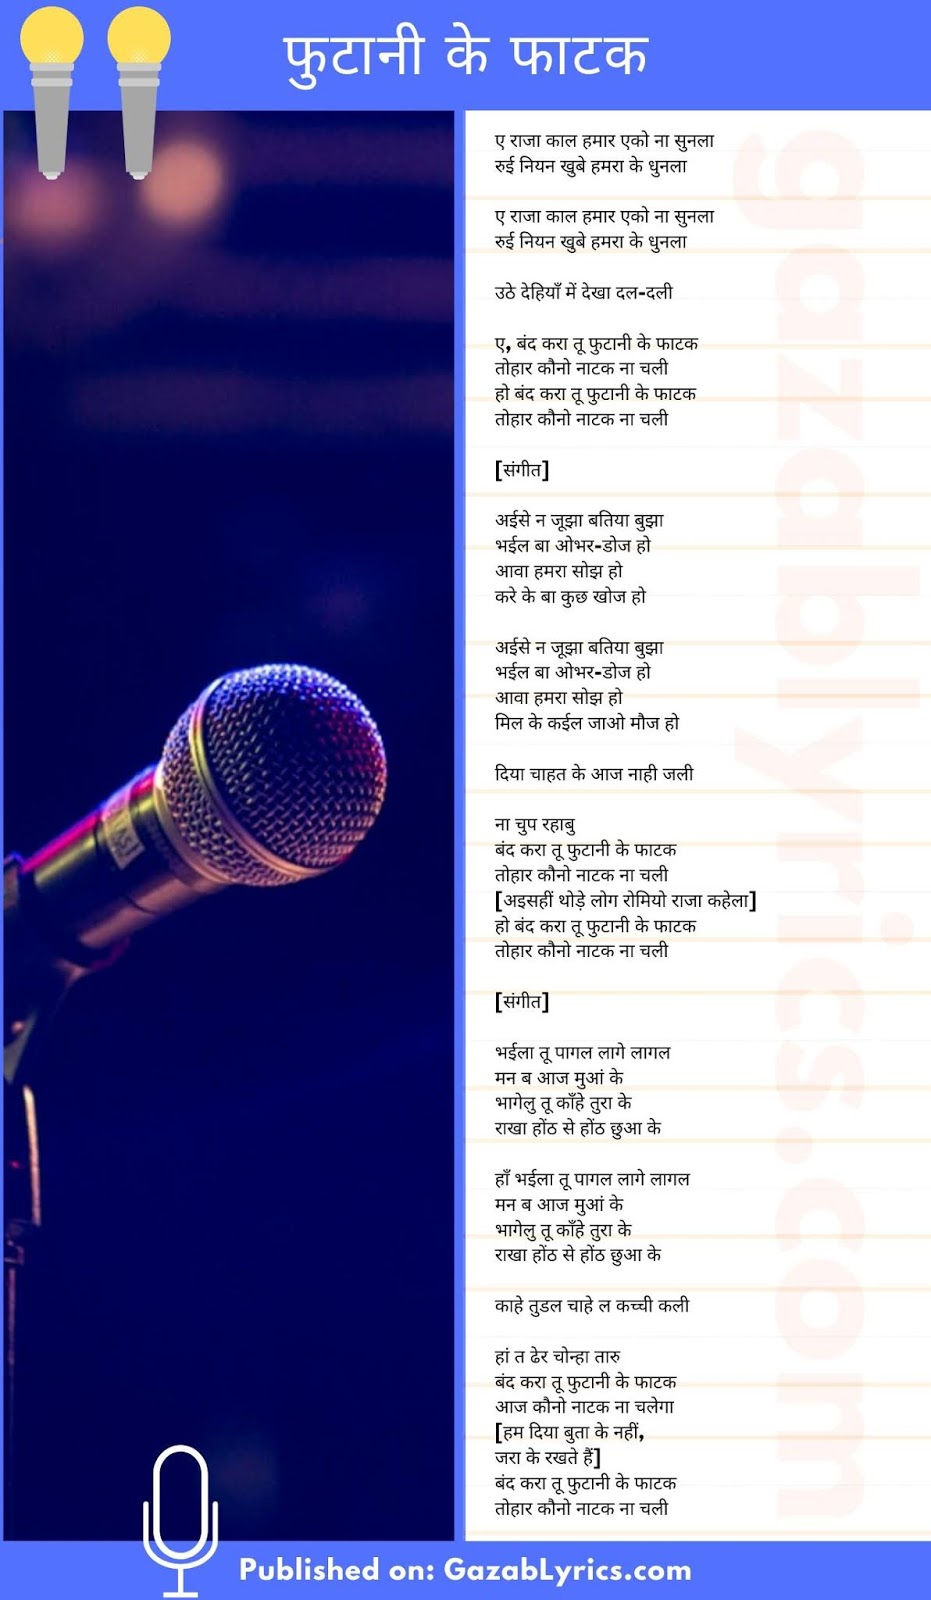 Futani Ke Fatak song lyrics image